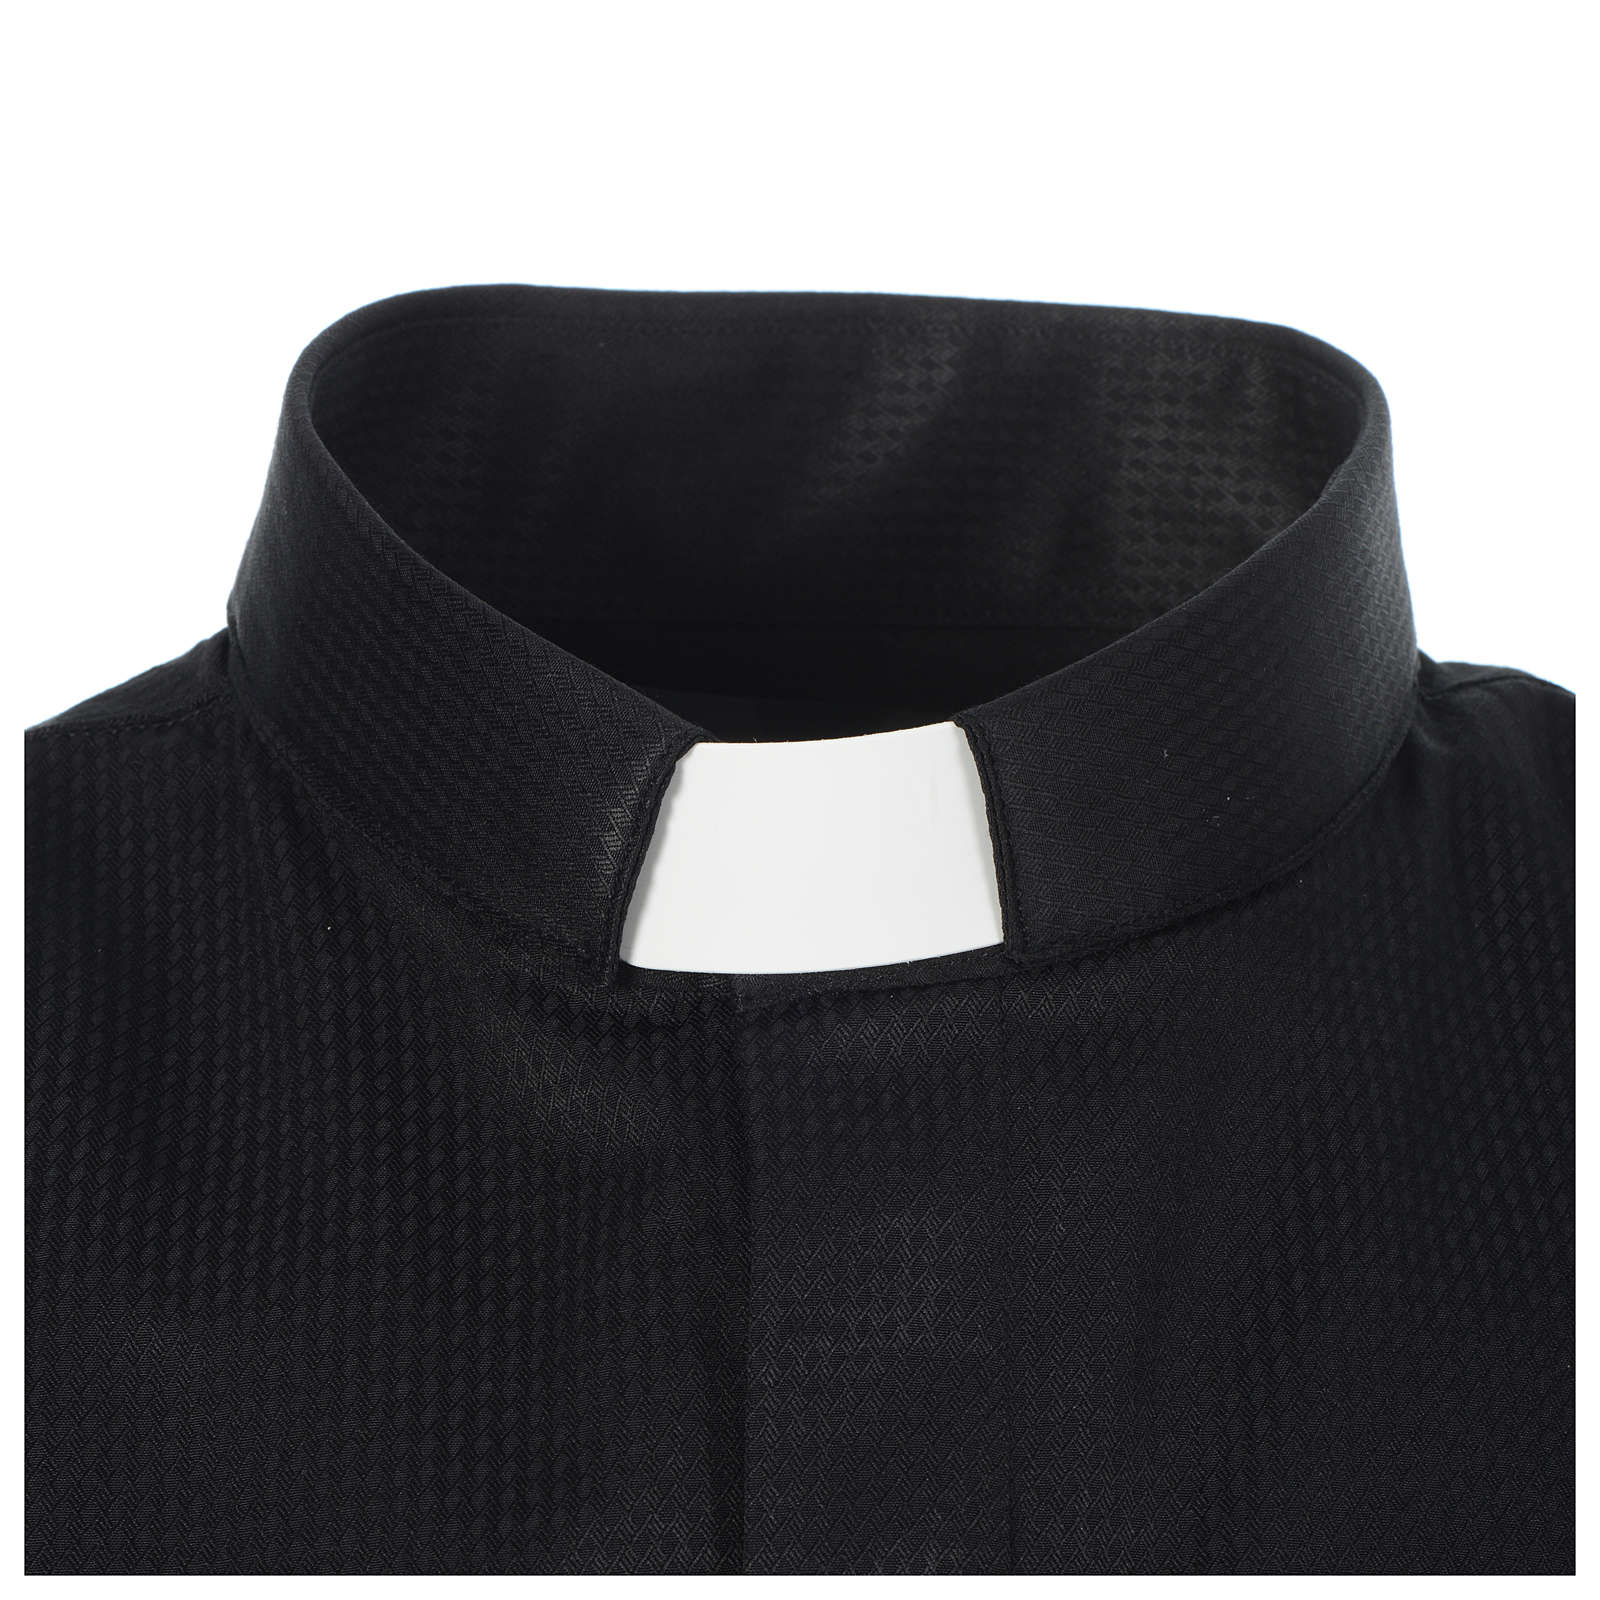 Black Jacquard tab collar shirt, long sleeve 4